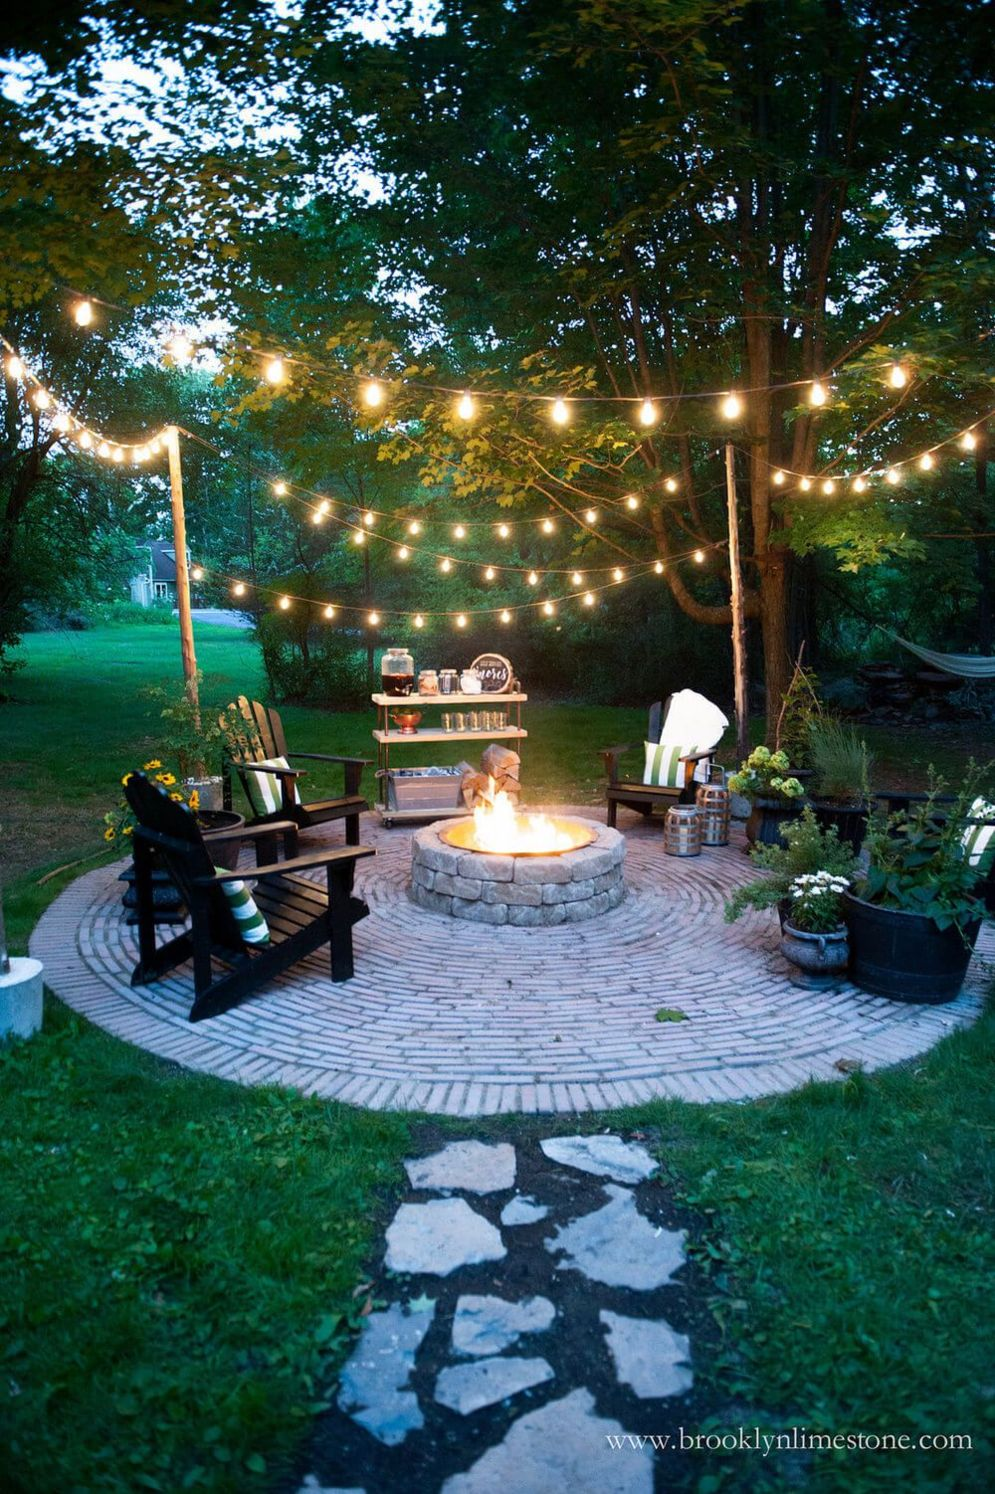 Amazing festoon lighting to enhance beautiful garden lighting ideas with fairy outdoor display Image 8